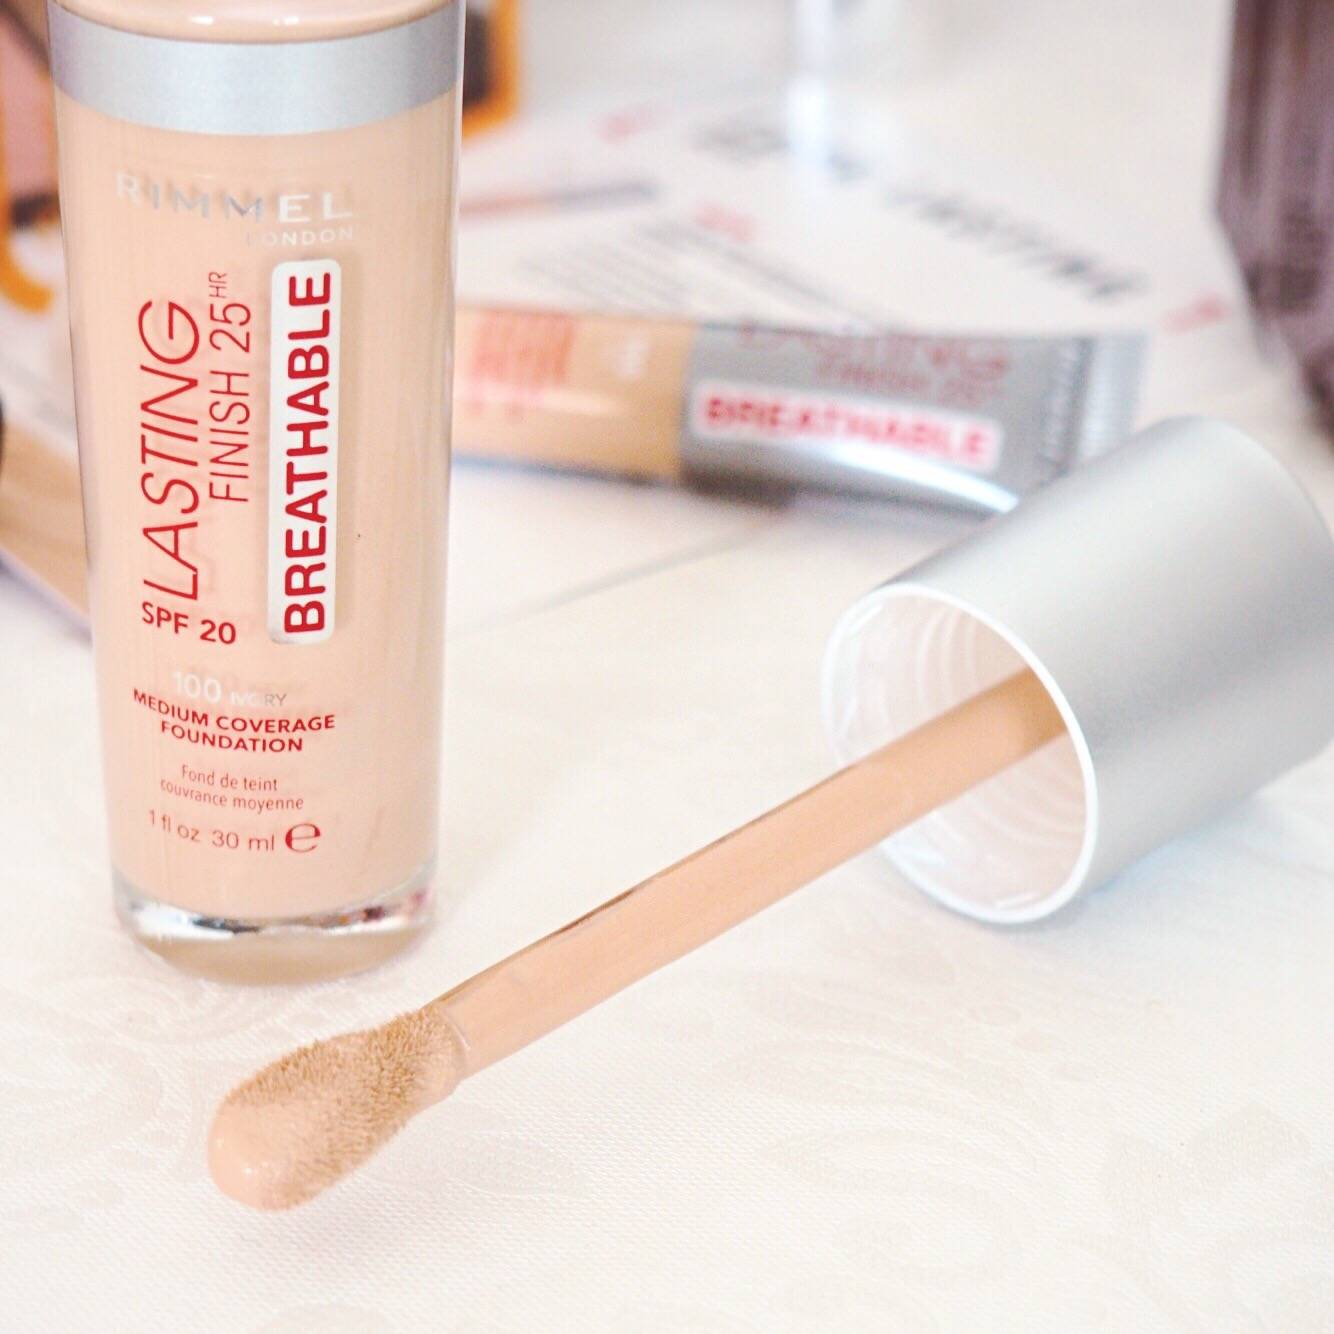 Rimmel London Long Lasting Breathable Foundation Review